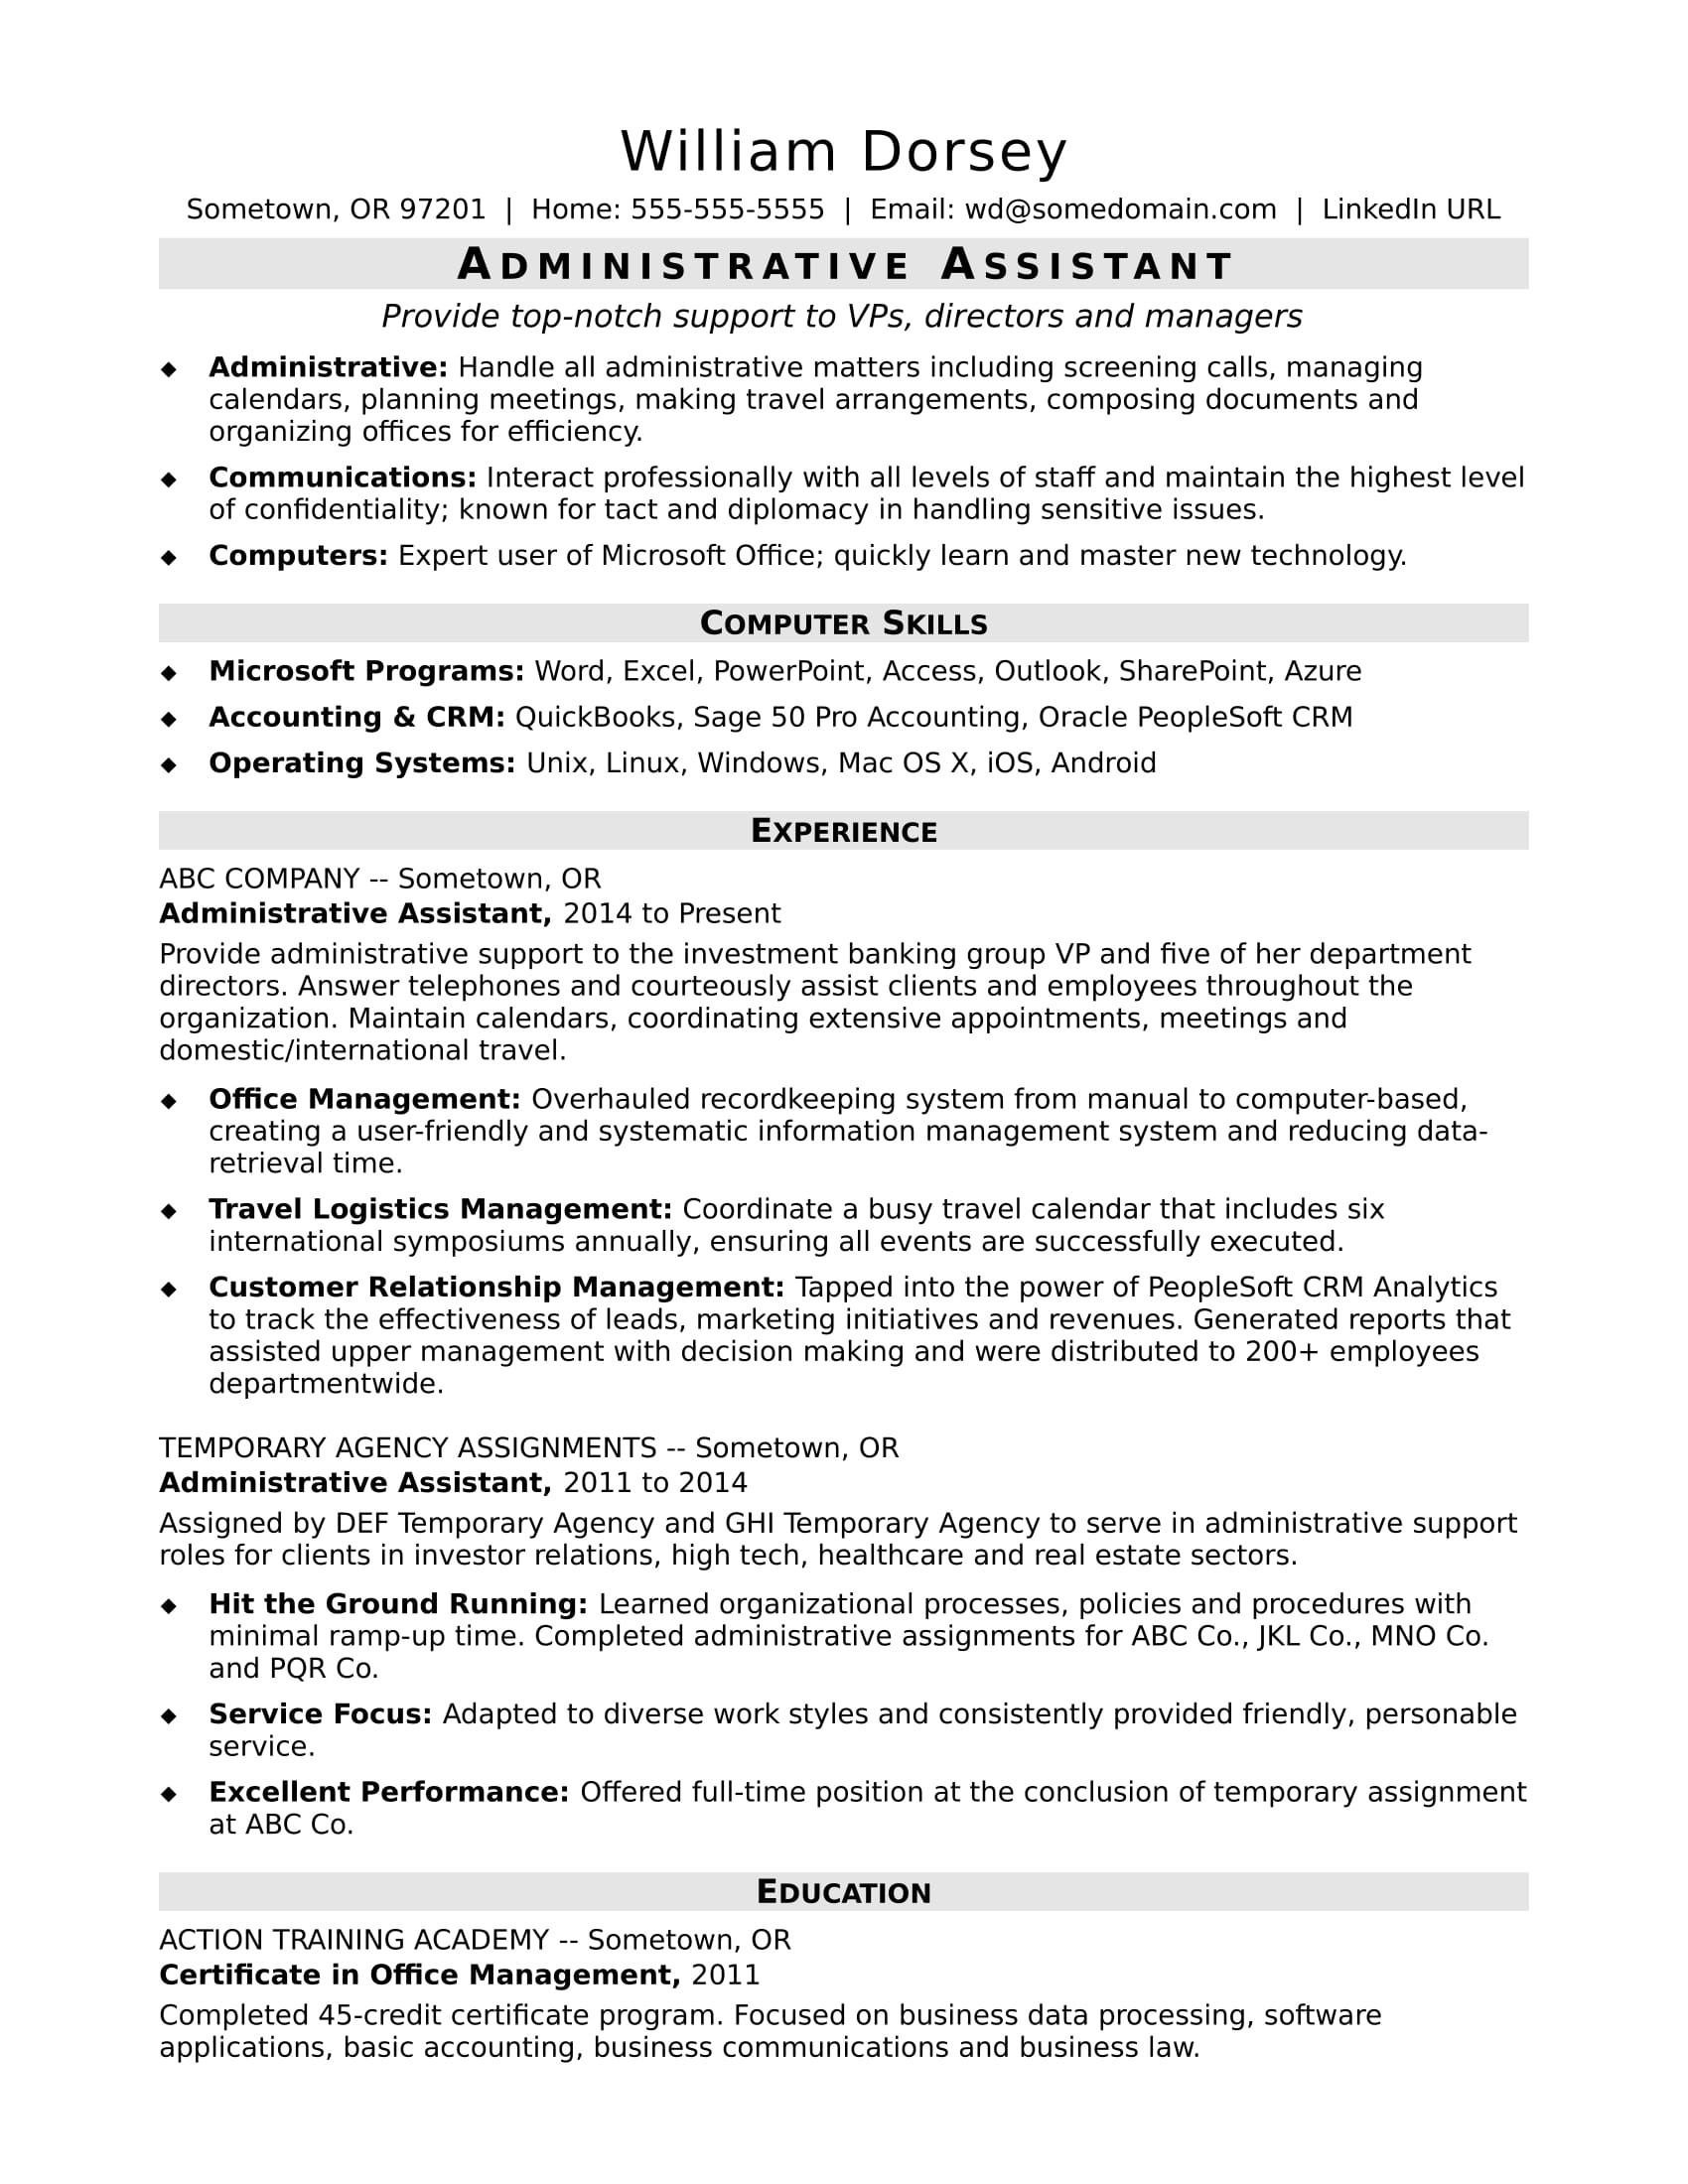 midlevel administrative assistant resume sample monster executive summary federal example Resume Executive Assistant Resume Summary